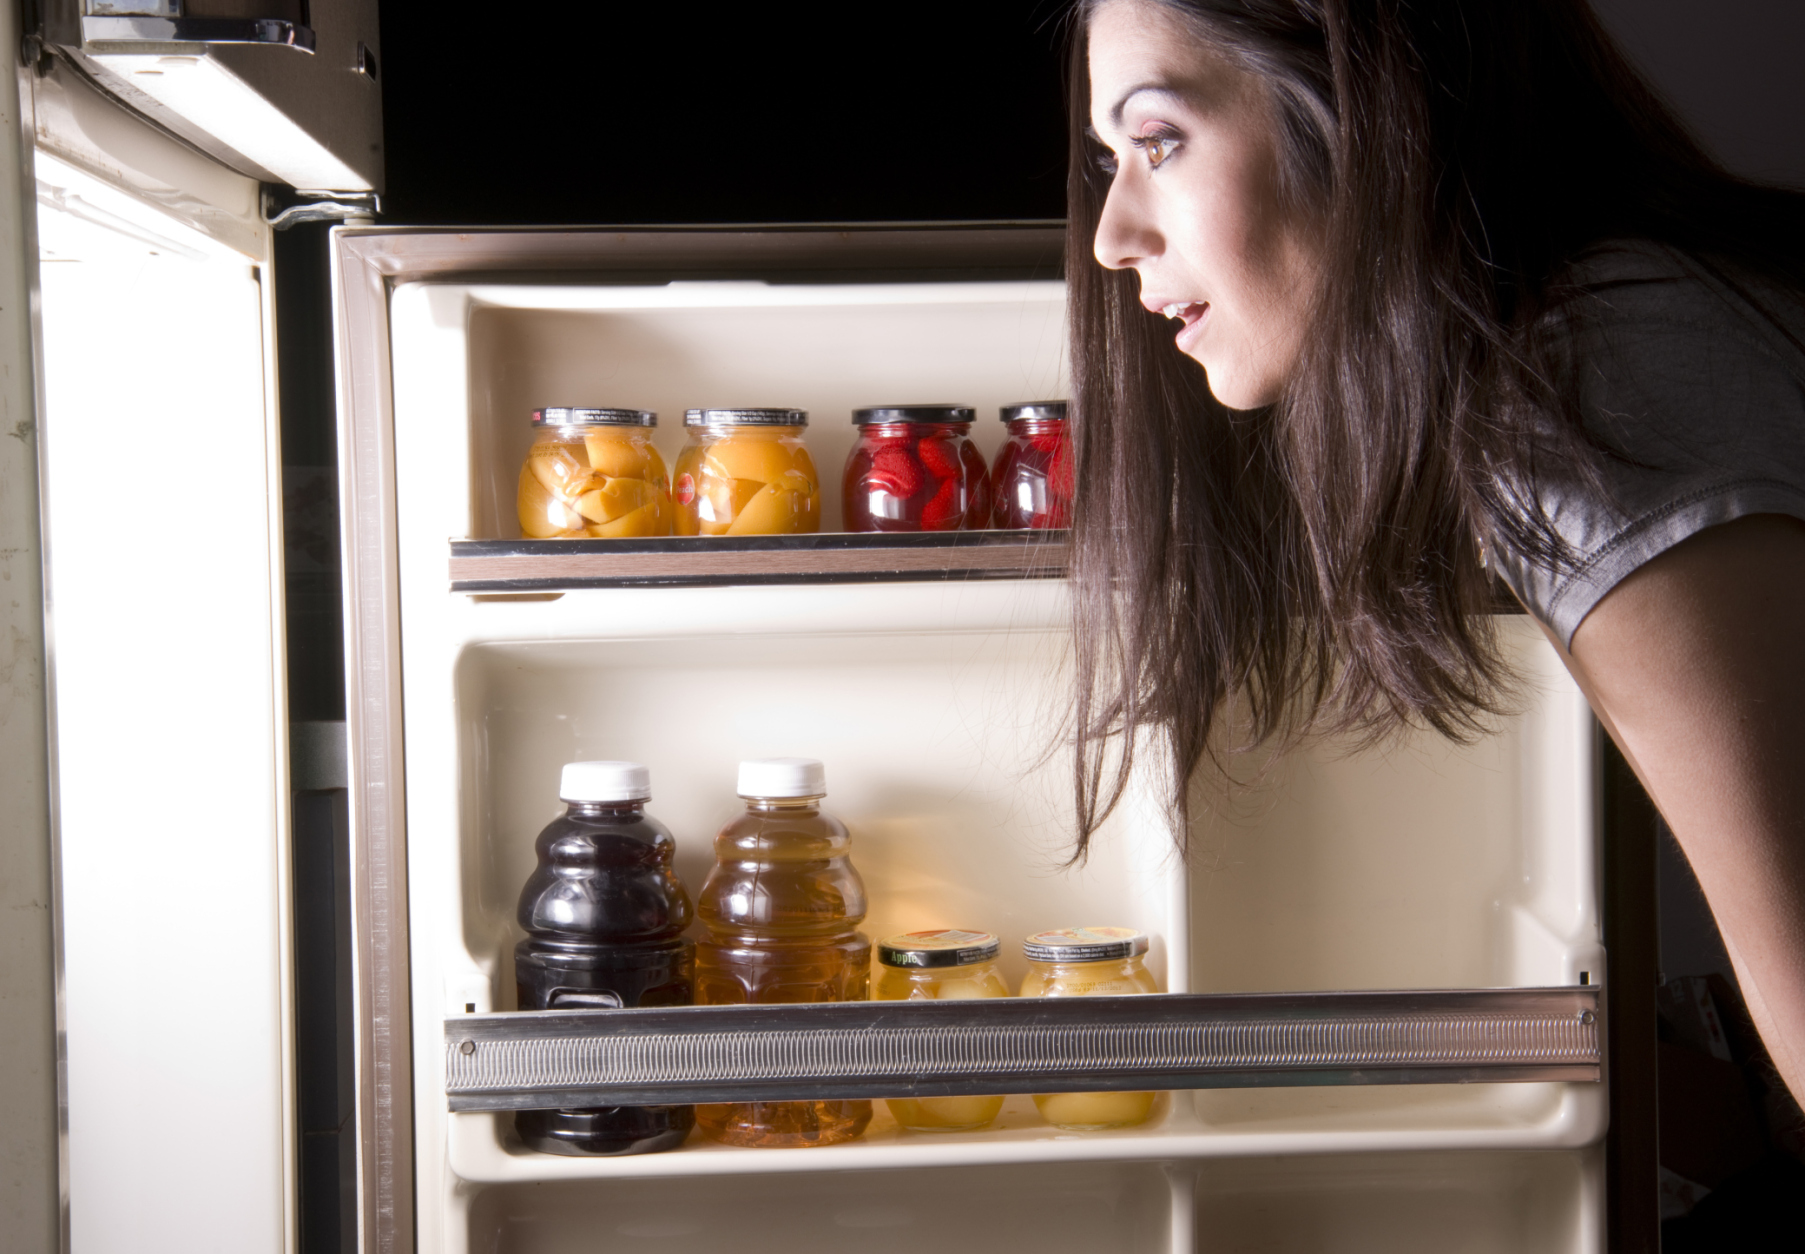 woman looking into the fridge looking for food